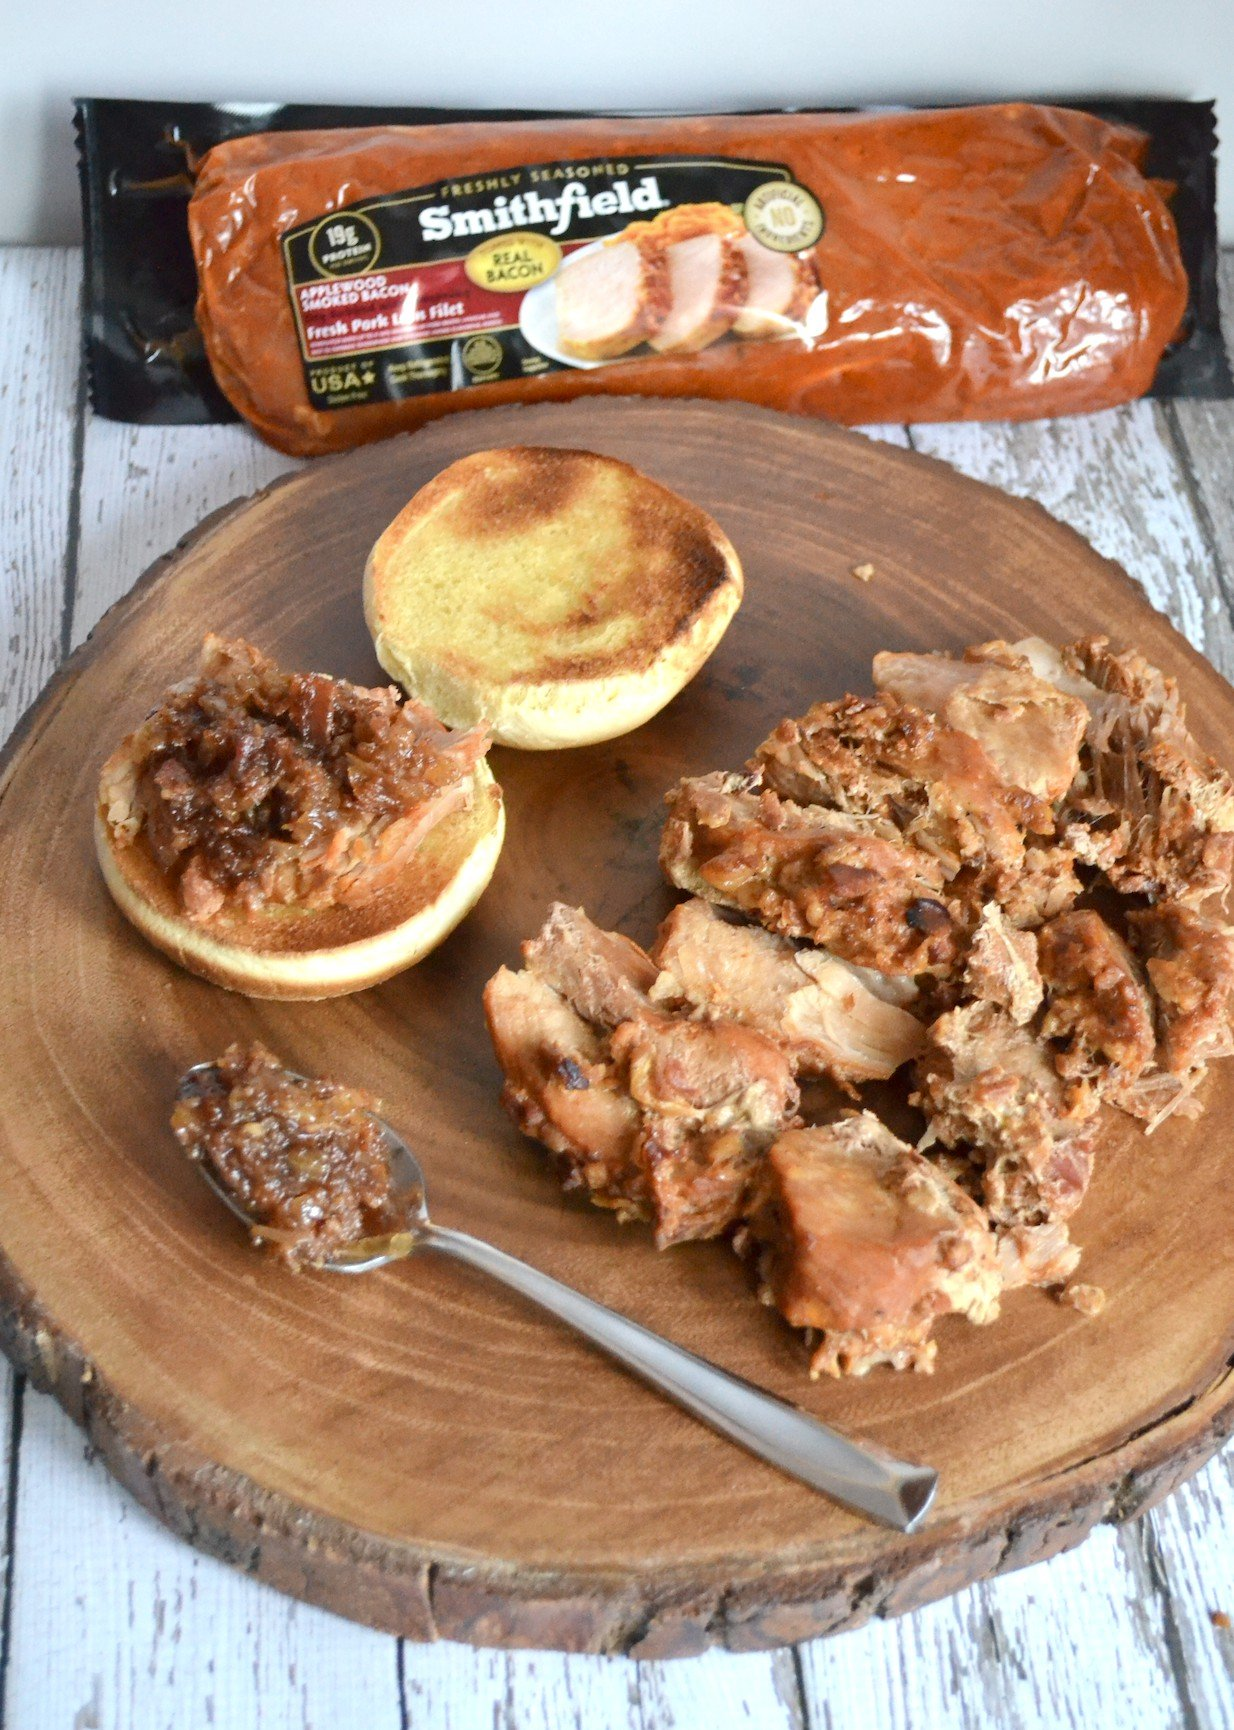 Open-Faced Pork Loin Sammies with Applewood Smoked Bacon Onion Jam